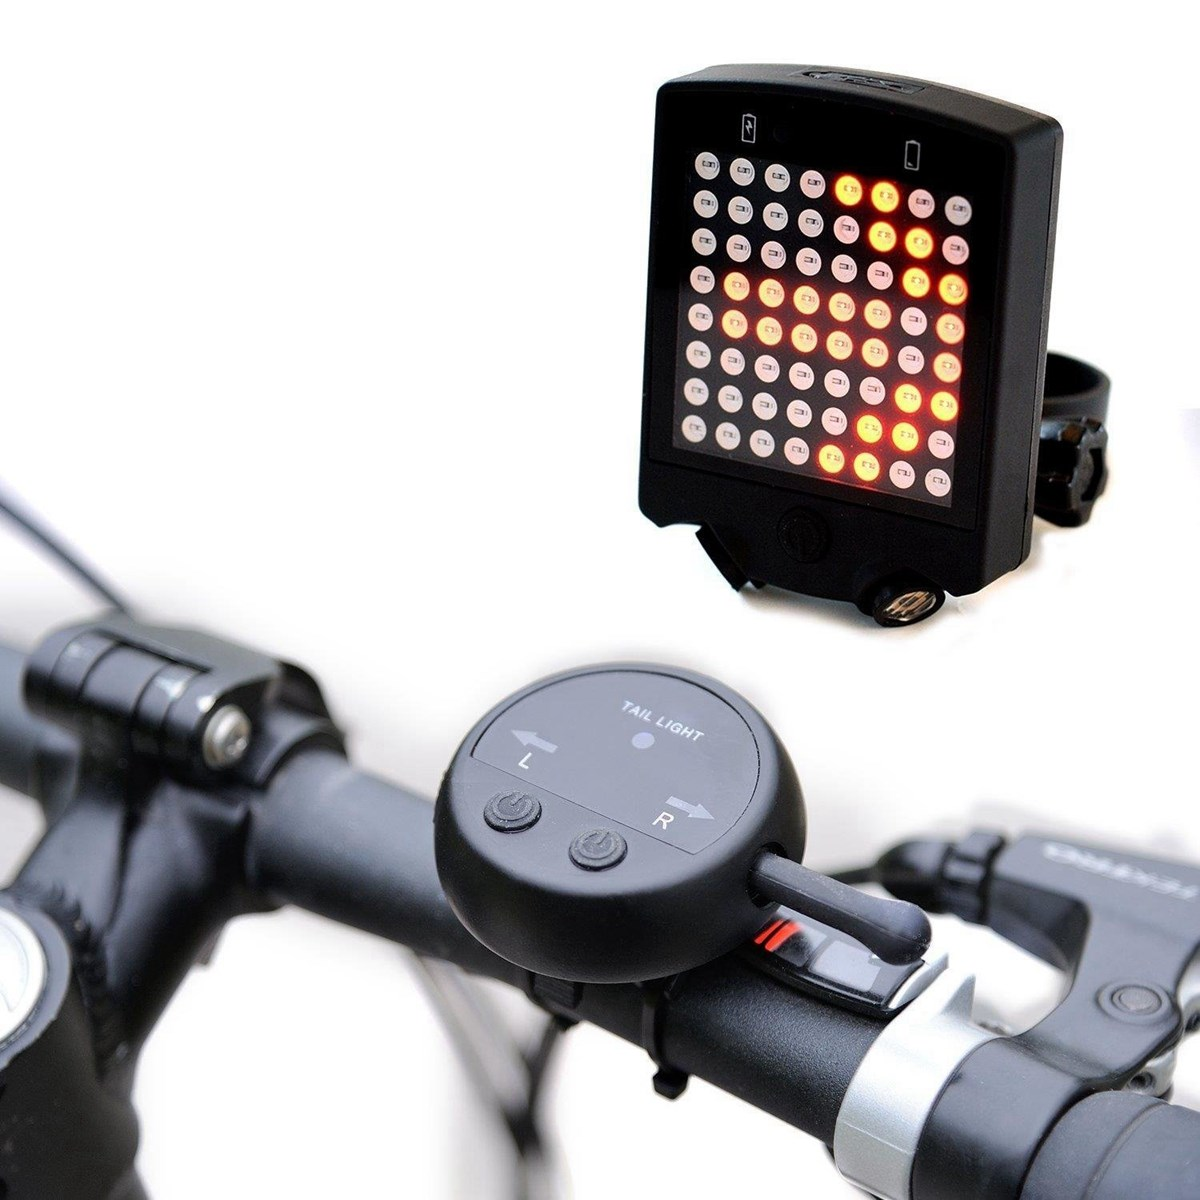 64 LED Laser Bicycle Rear Tail Light USB Rechargeable With Wireless Remote Bike Turn Signals Safety Warning Light Cycling